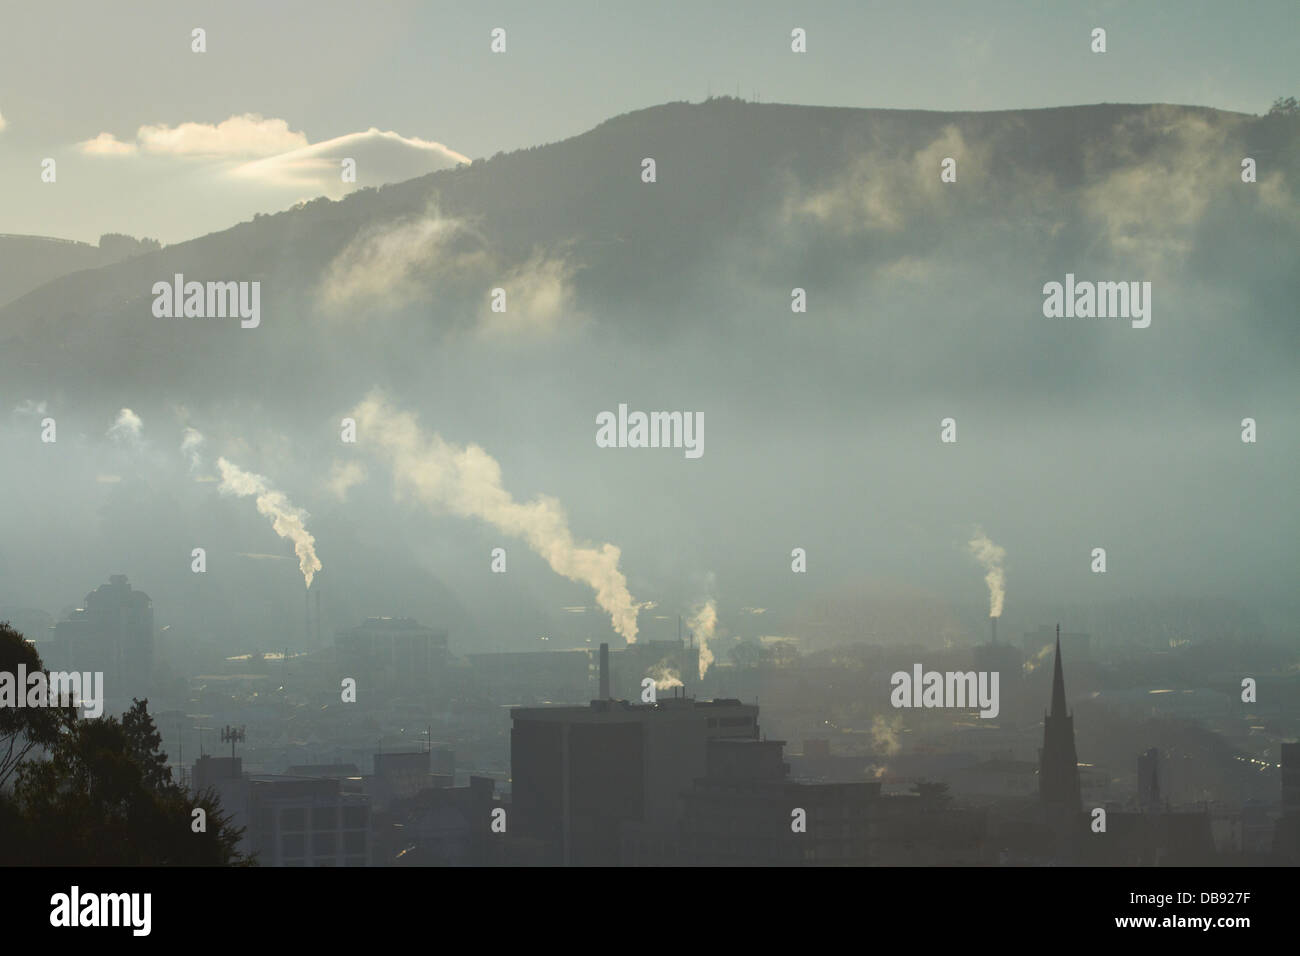 La pollution de l'air, Dunedin, île du Sud, Nouvelle-Zélande Photo Stock